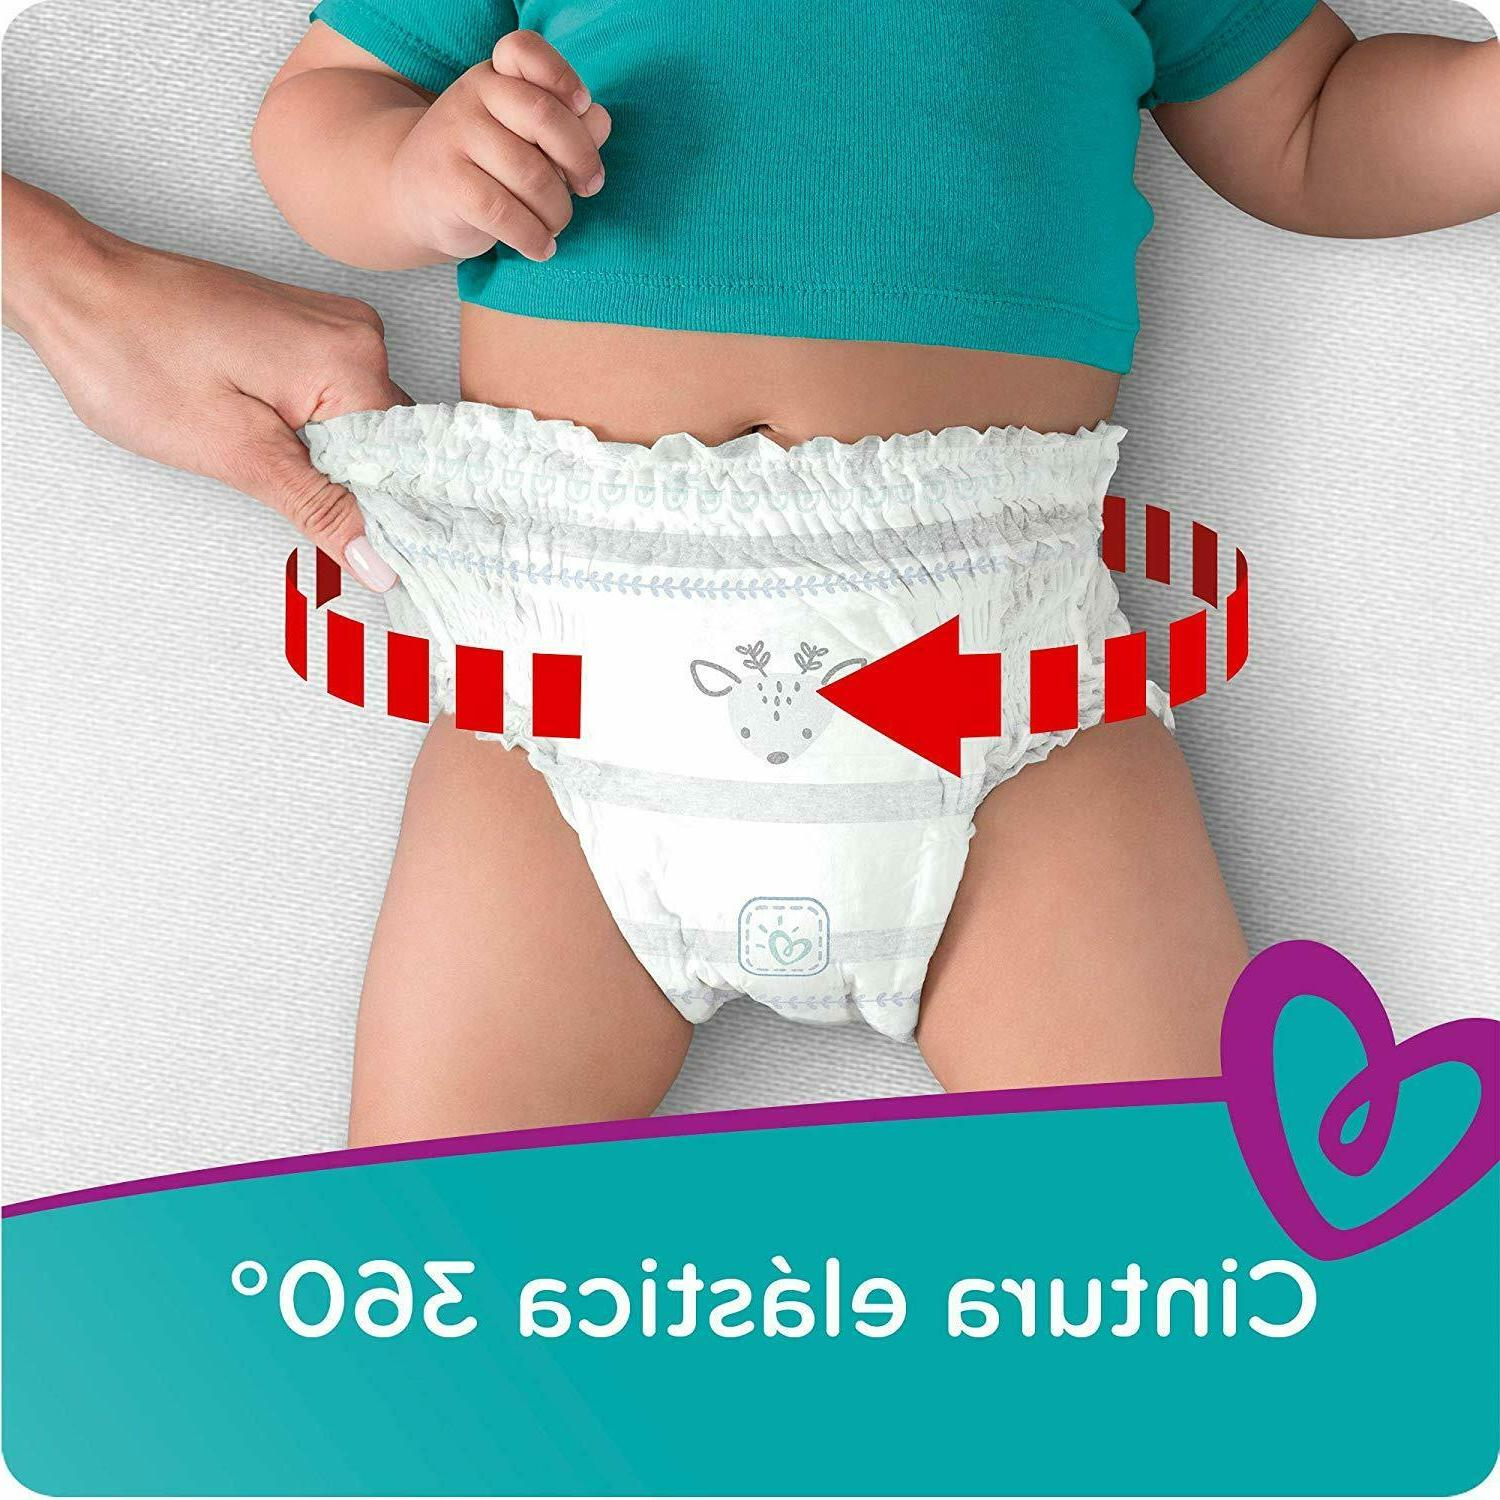 Pampers Pull On Diapers Size 6, 44Count - Cruisers 360˚ Fit Baby